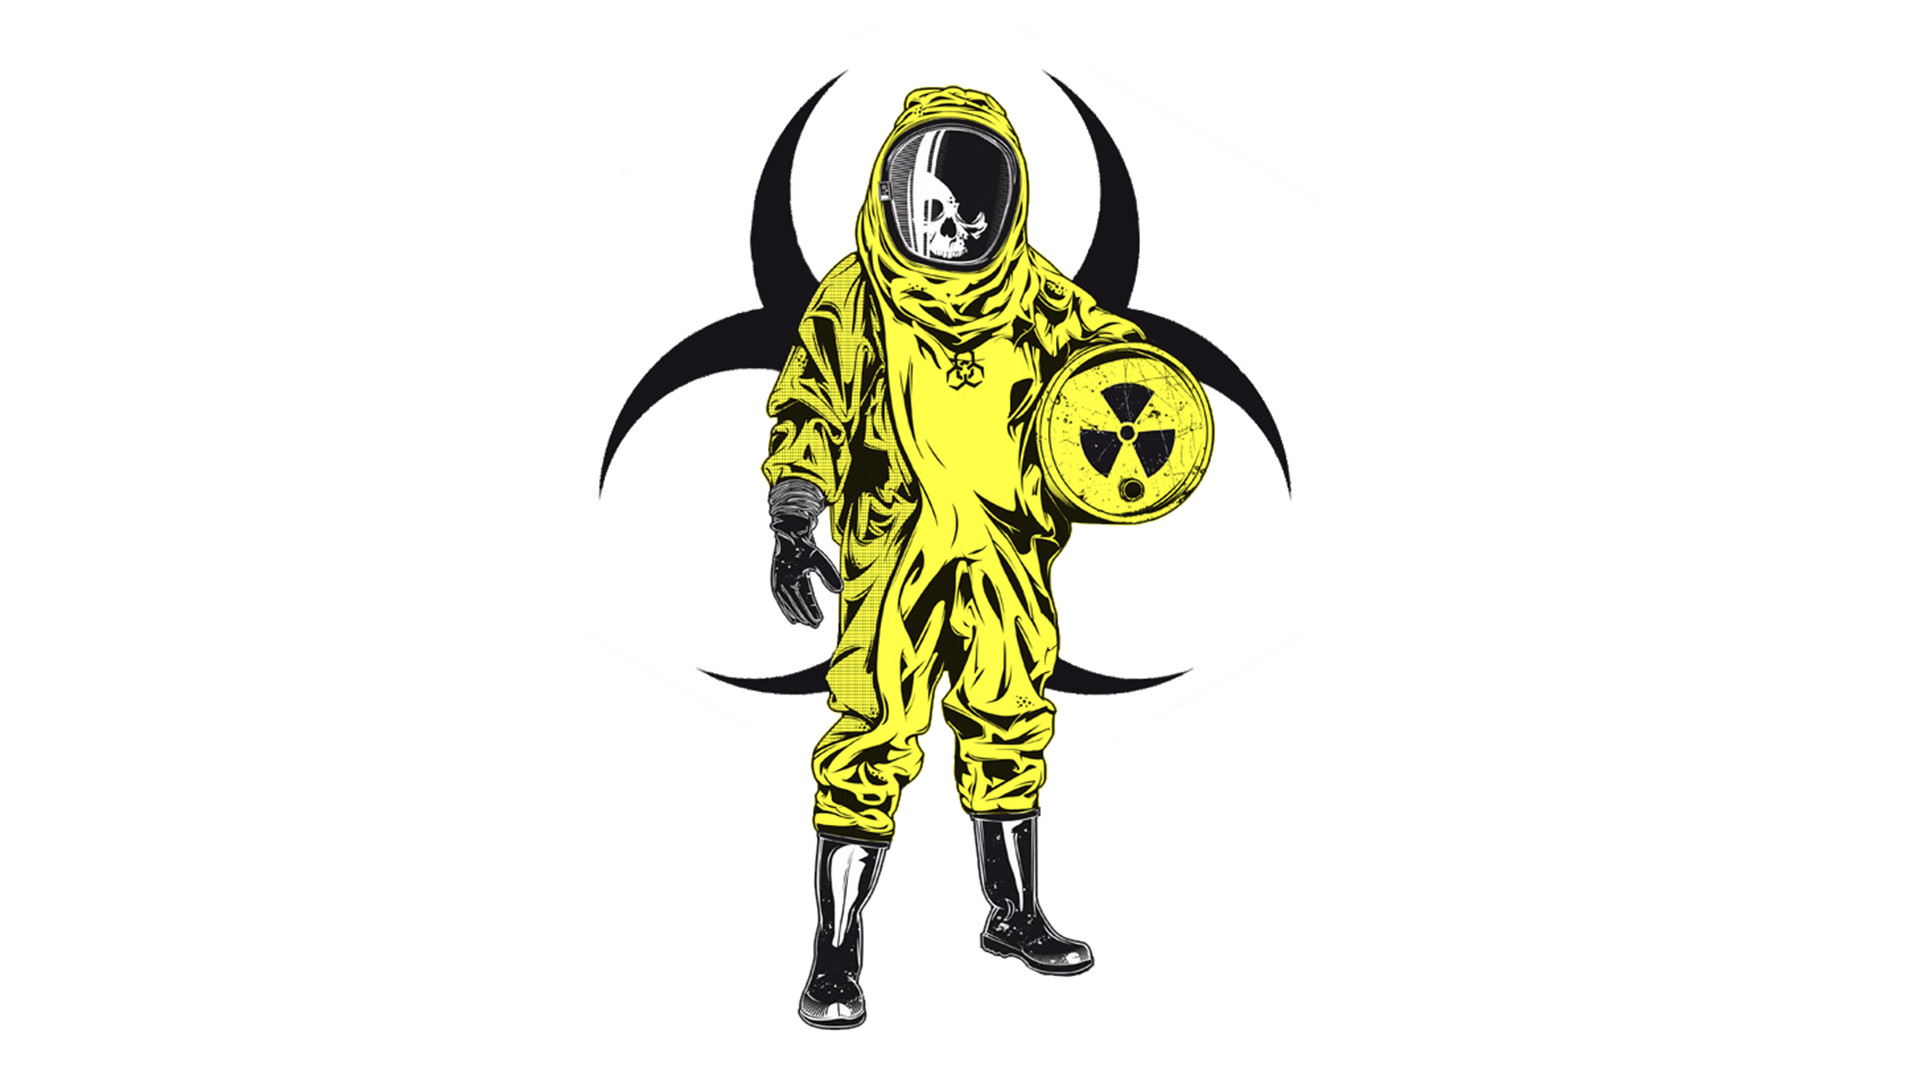 Hazmat clipart free svg freeuse library Free Hazmat Cliparts, Download Free Clip Art, Free Clip Art on ... svg freeuse library